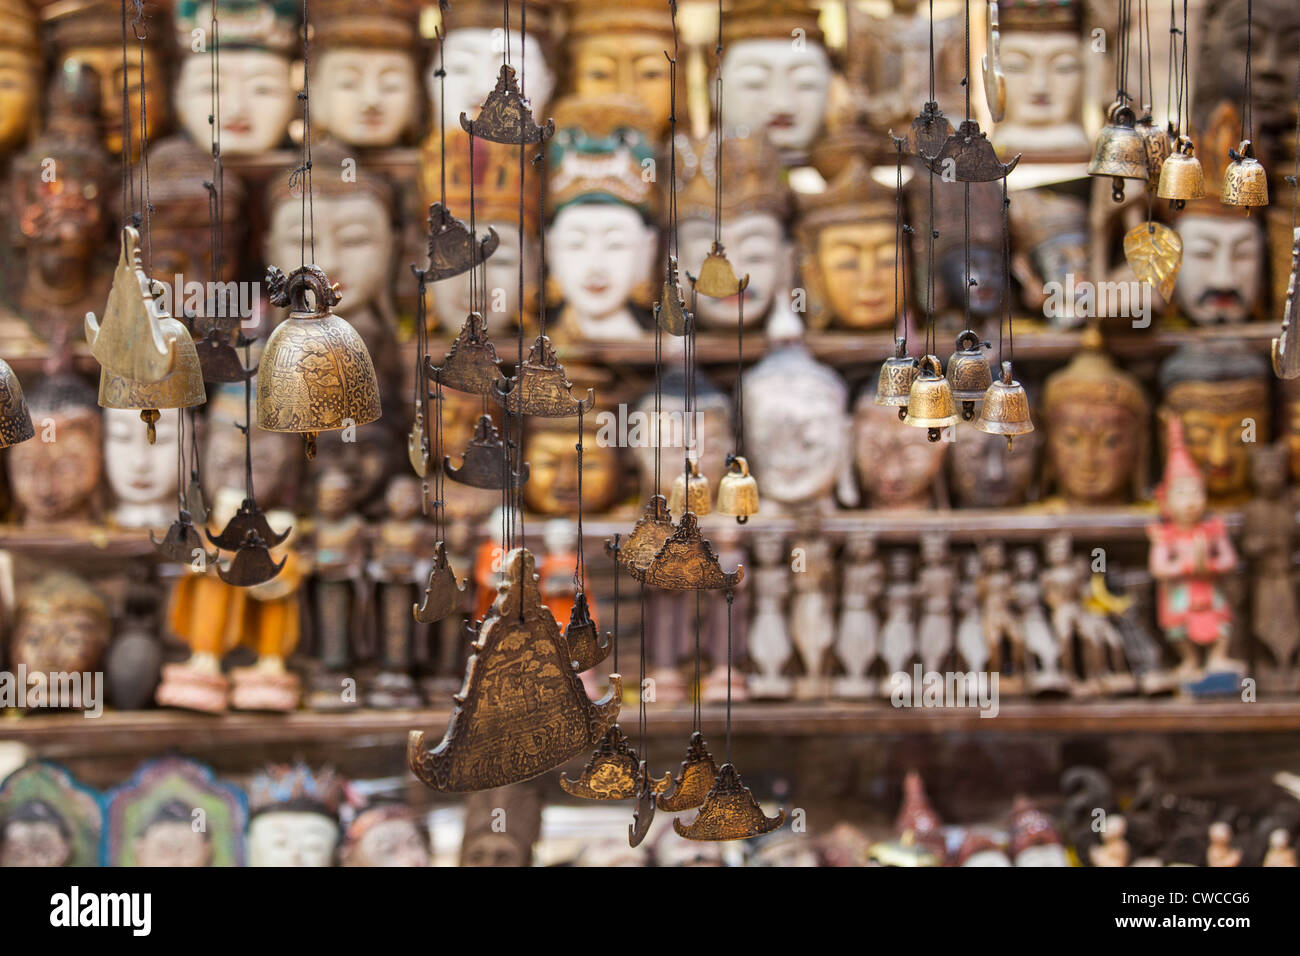 Wind chimes at a souvenir stand, Bagan, Myanmar - Stock Image